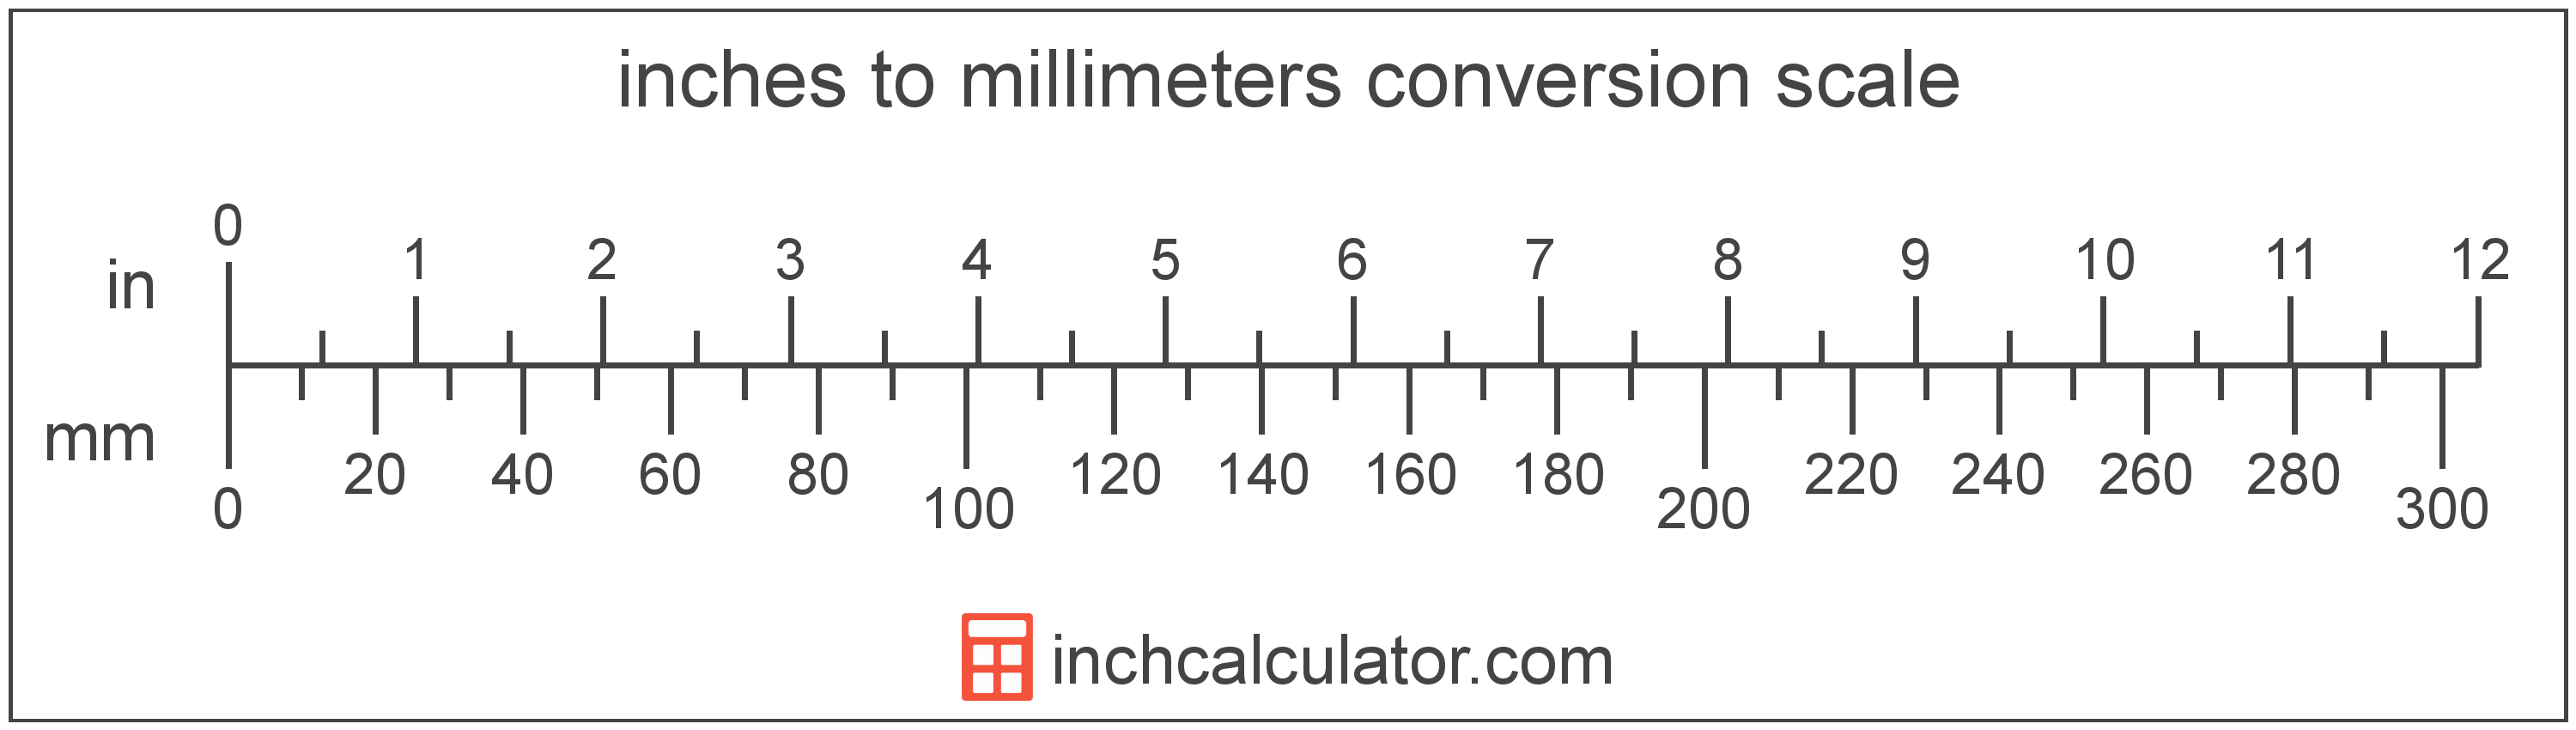 How many centimeters in 4.33 inches?